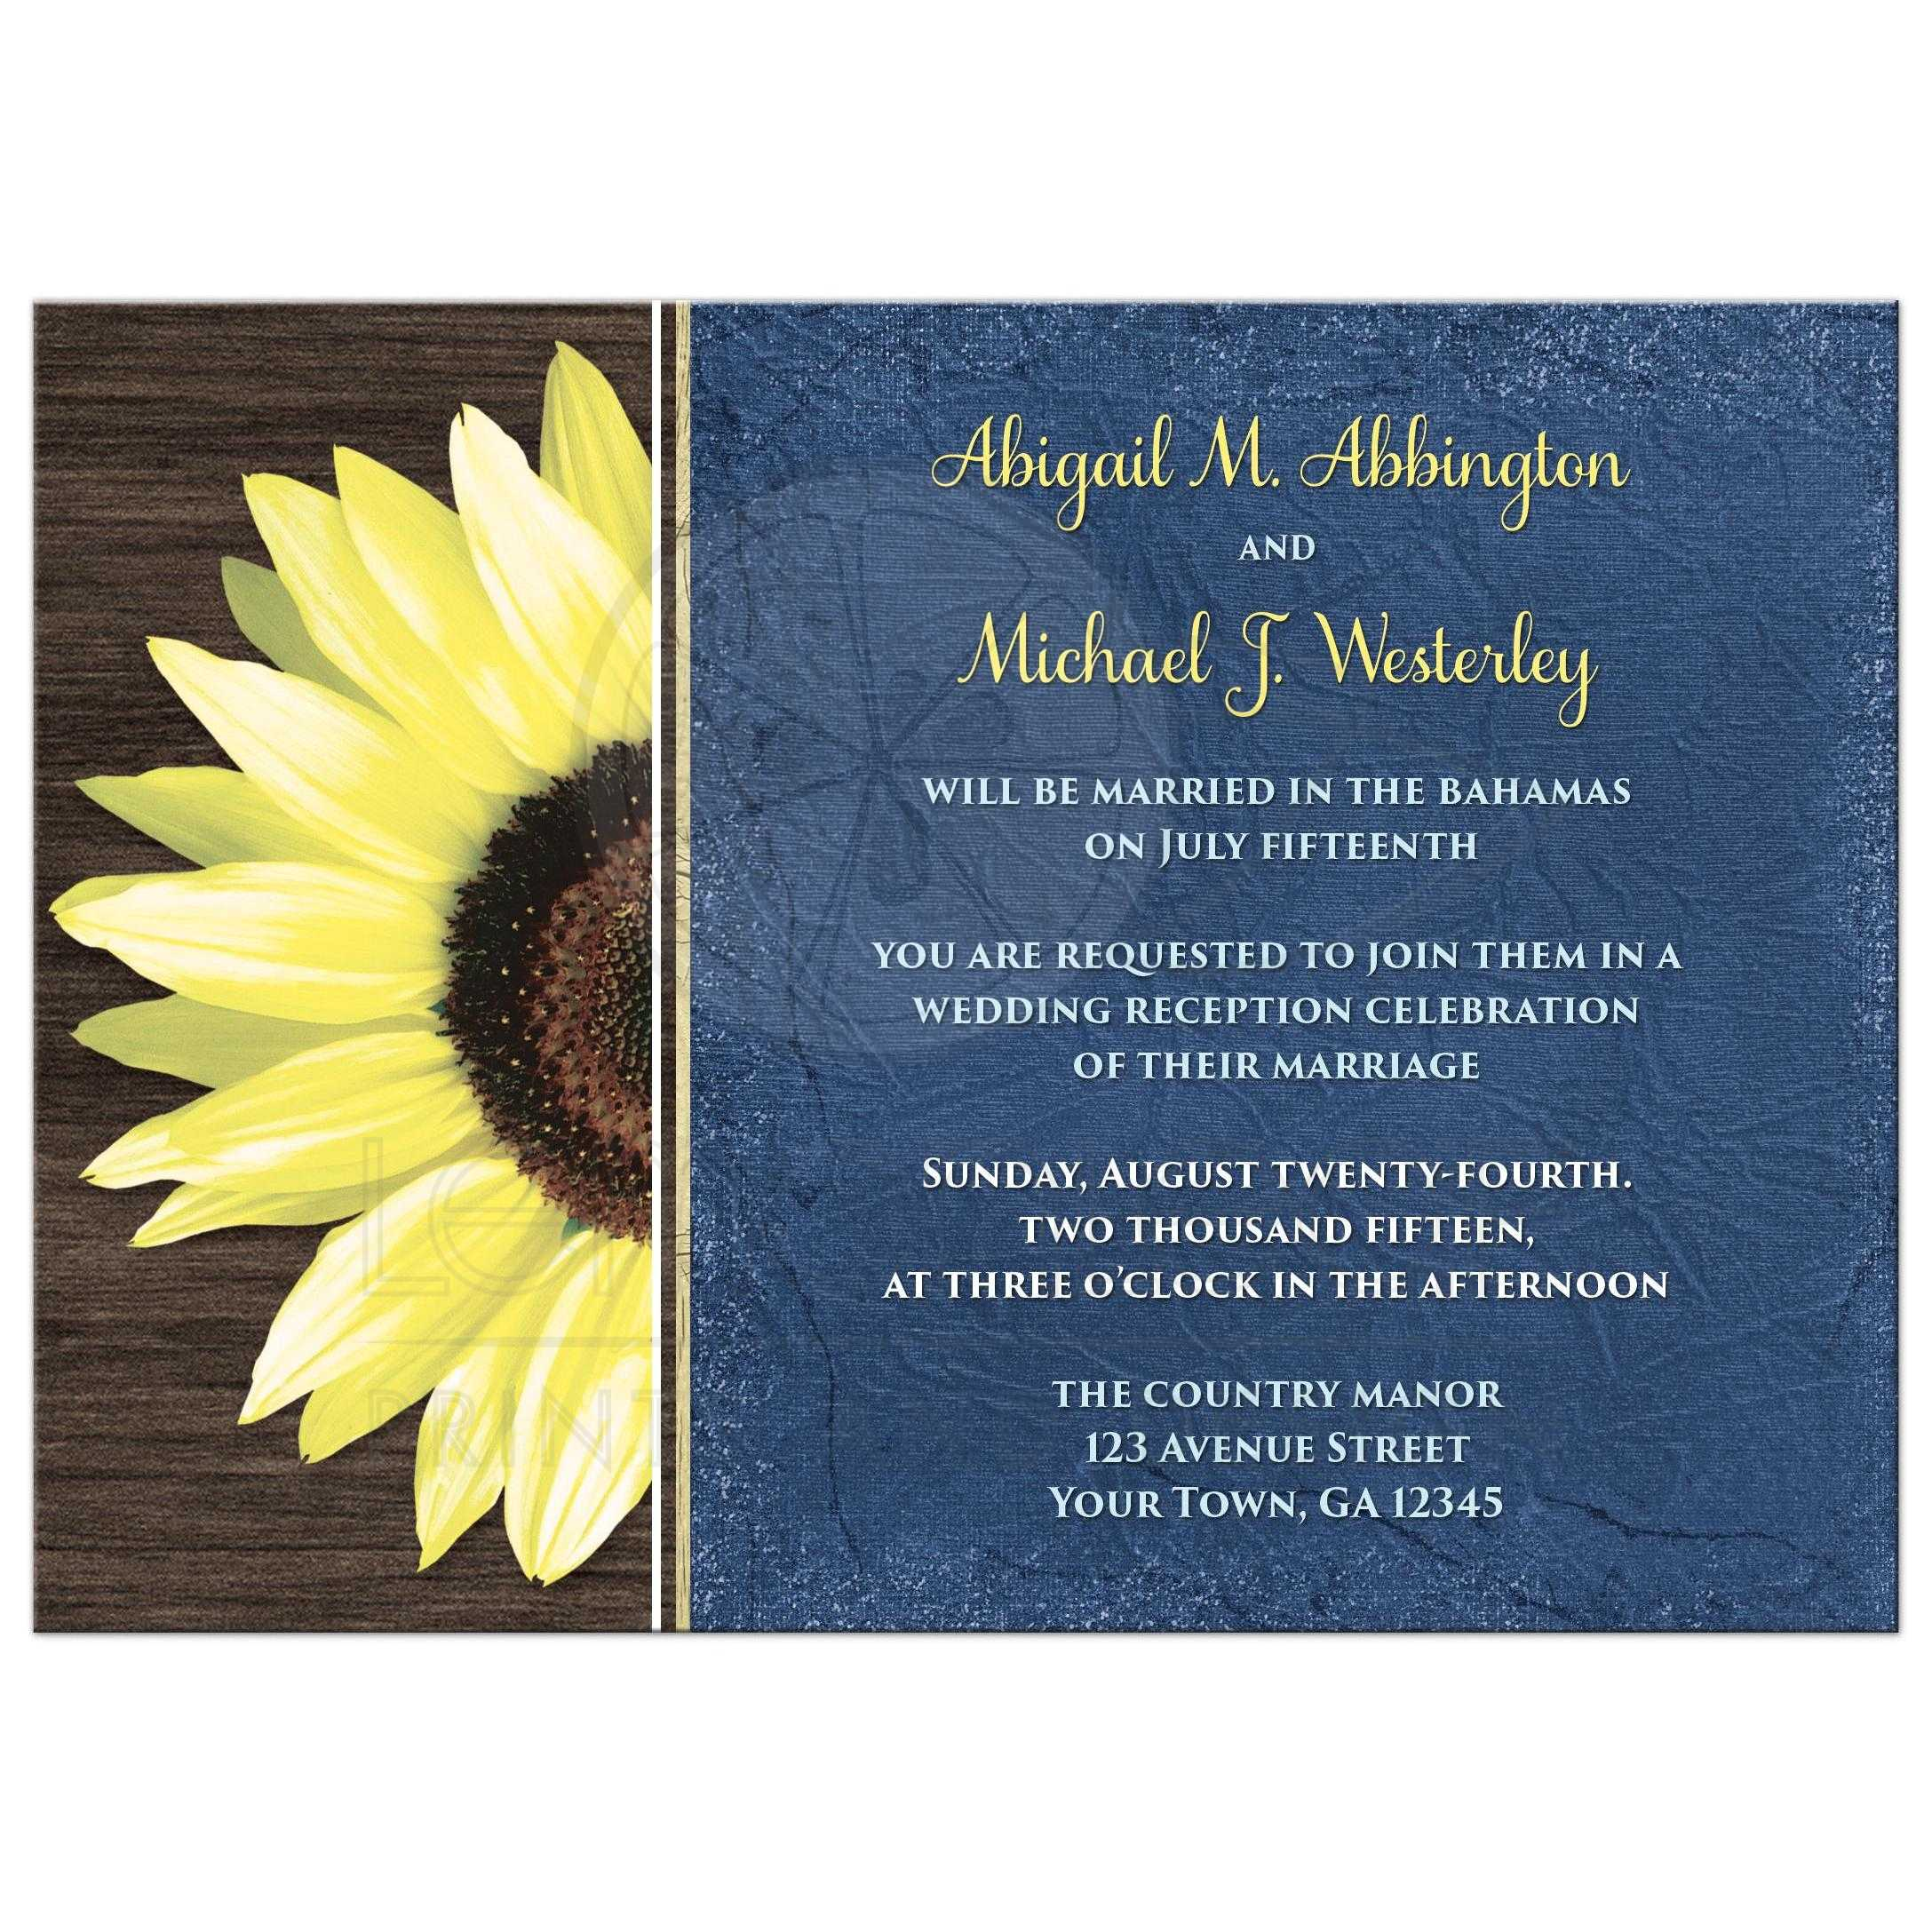 Reception Only Invitations - Rustic Sunflower and Blue